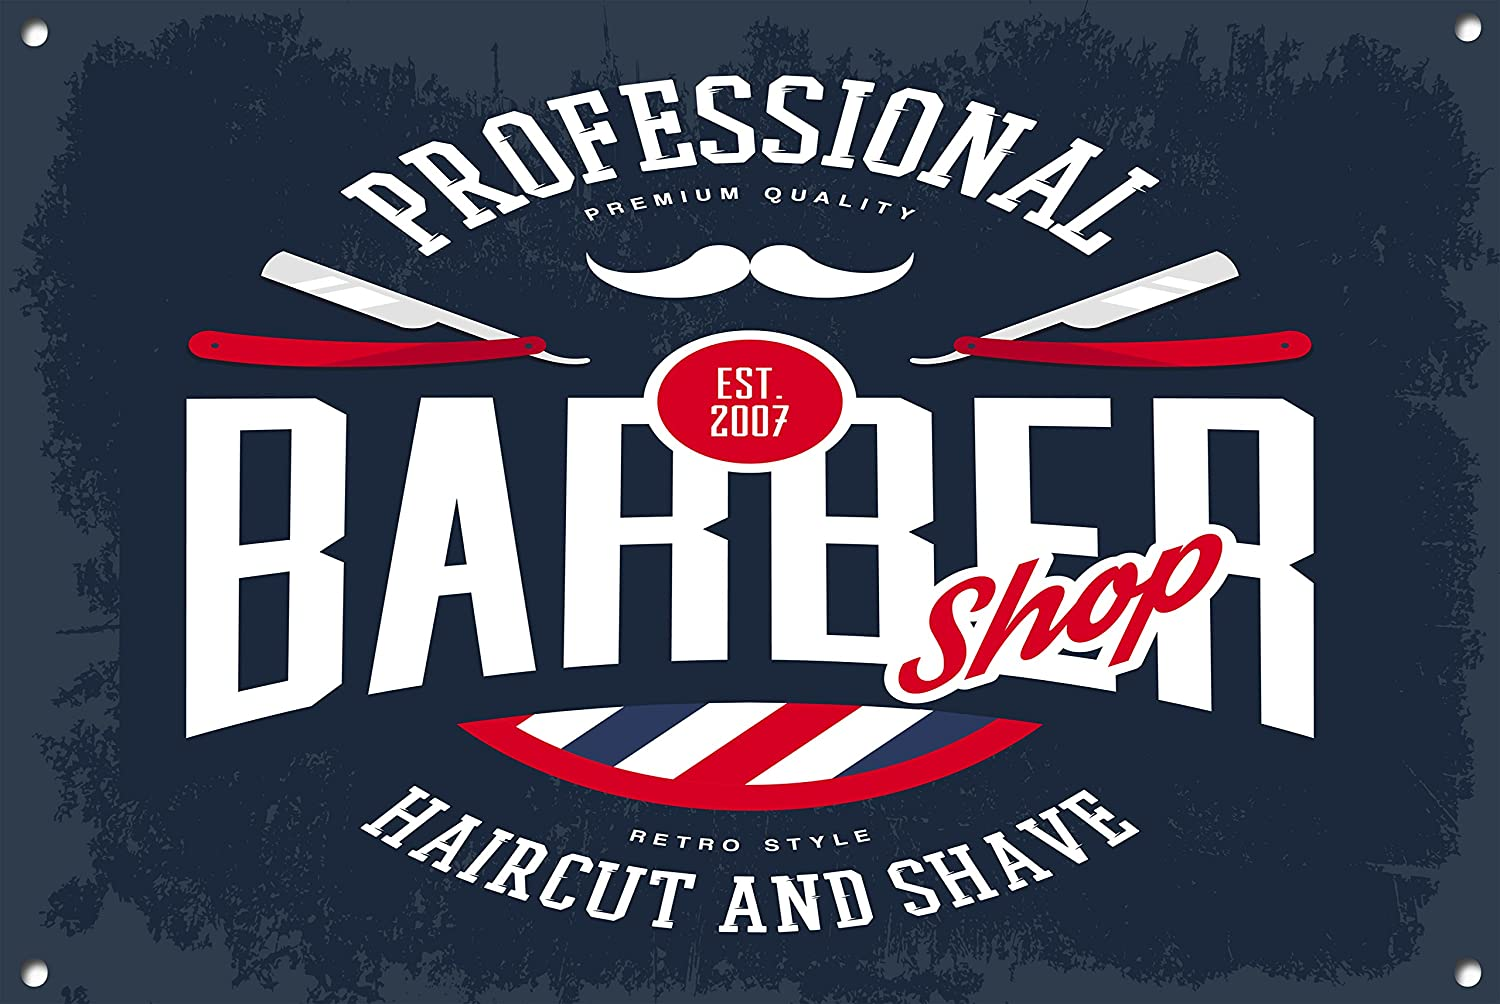 The Metal Sign Shack Cartel de Barber Shop, signo de metal ...